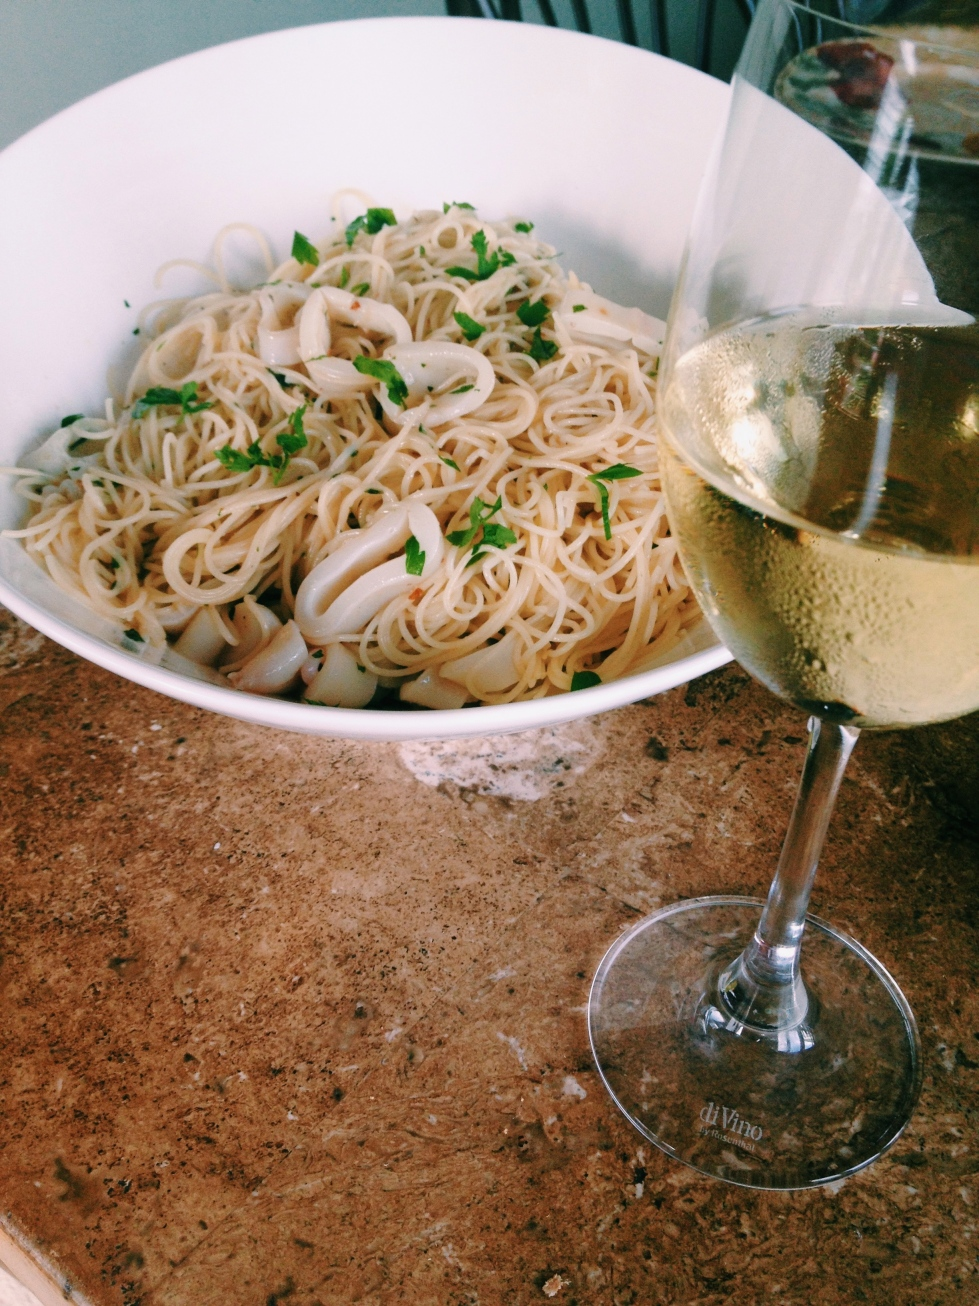 Chilled Chardonnay Braised Calamari Pasta